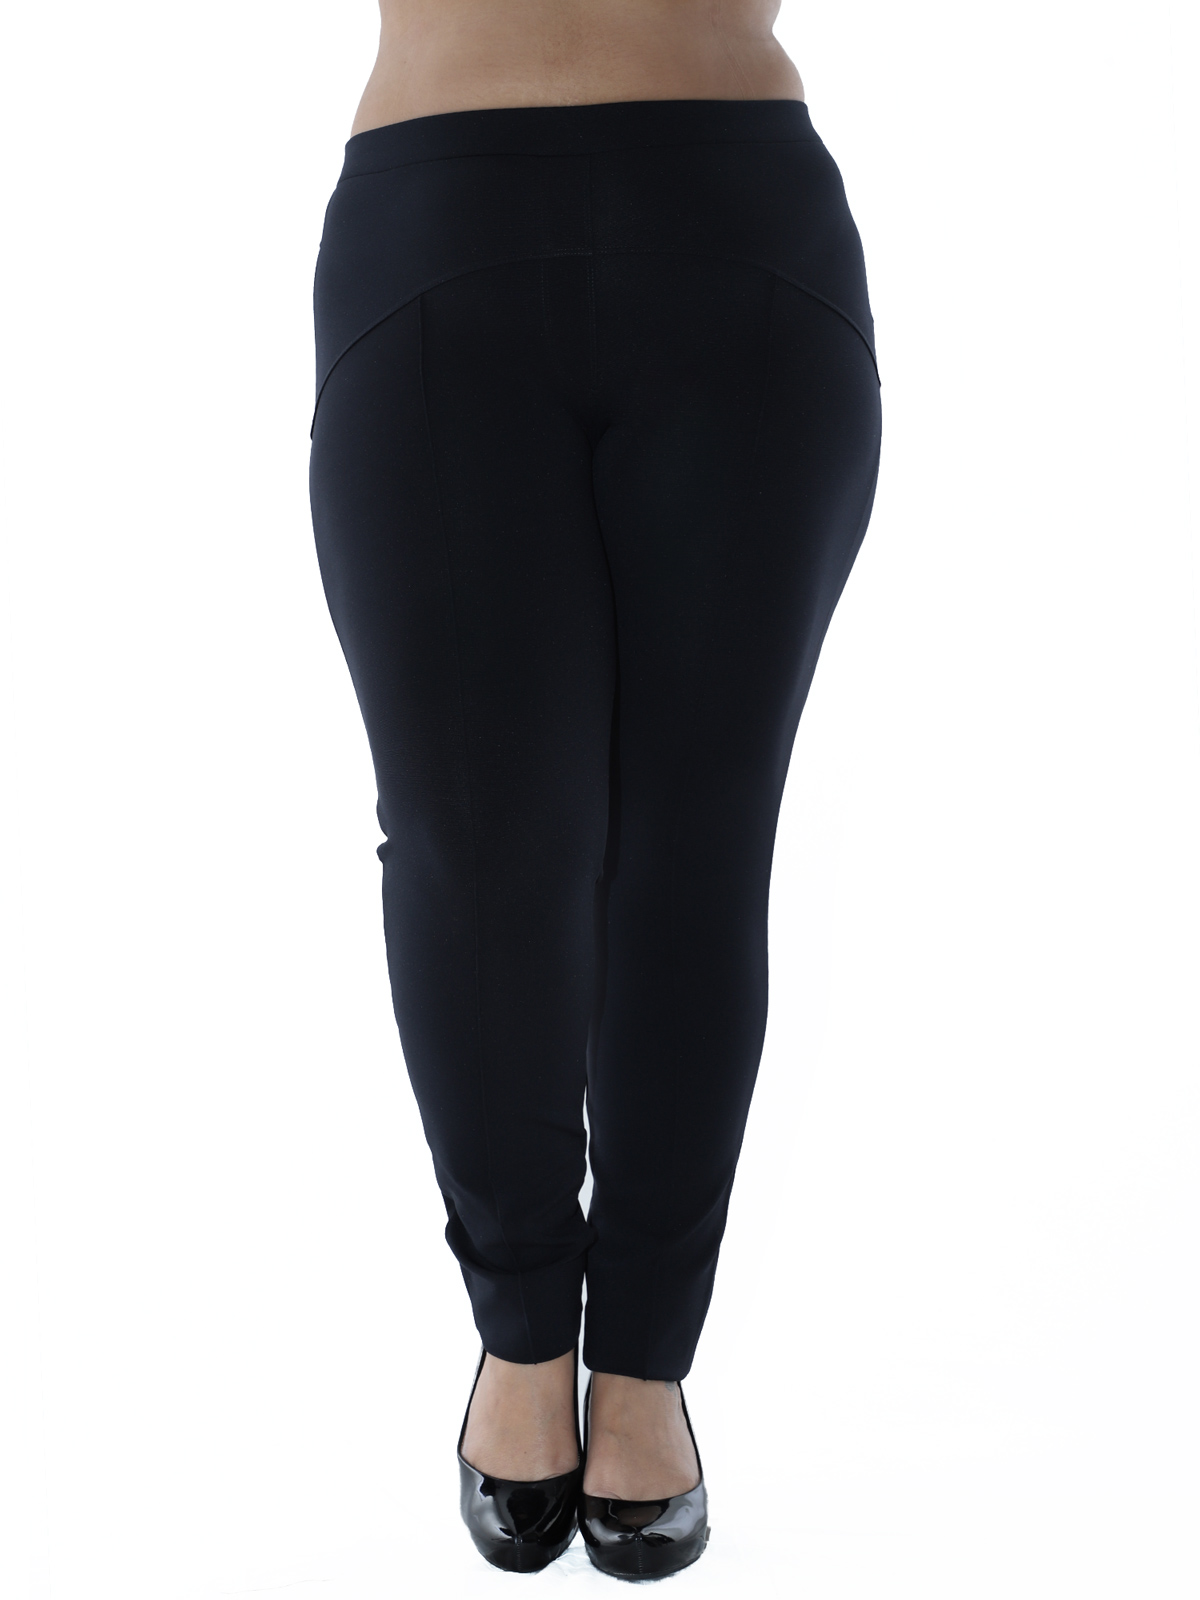 Calça Plus Size Feminina Body Fit Grossa Recortes Preto